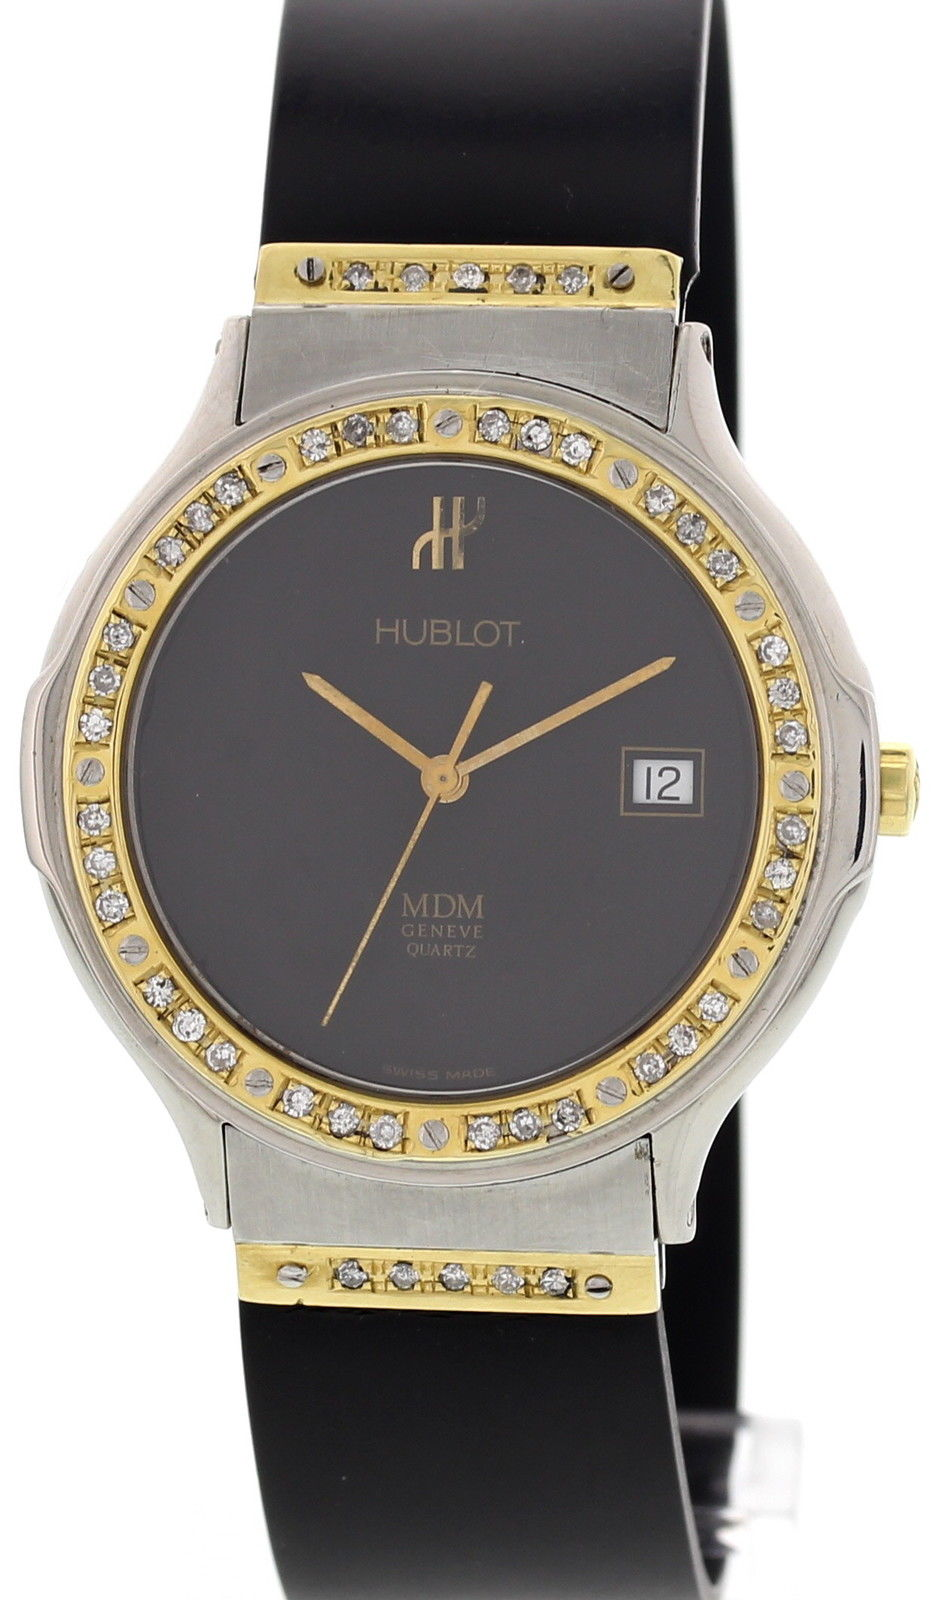 "Image of ""Hublot MDM Stainless Steel Diamond Mens Watch"""